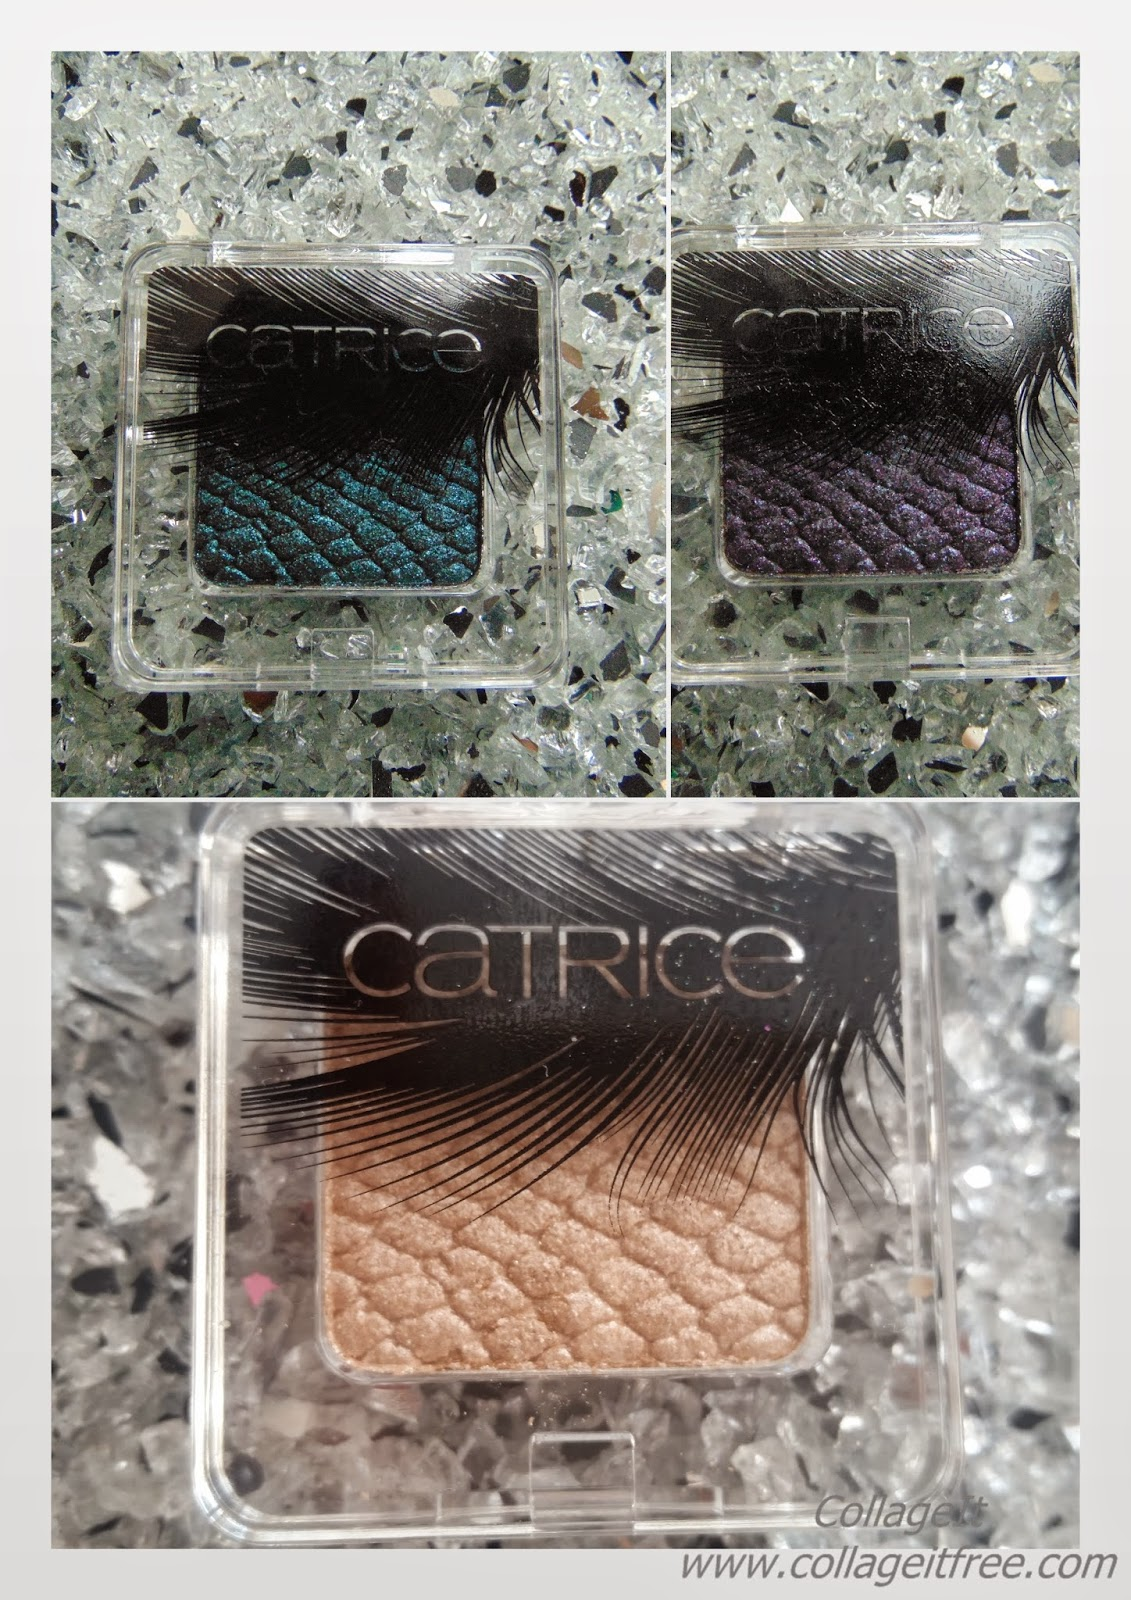 Feathered Fall - Limited Edition - Catrice - www.annitschkasblog.de